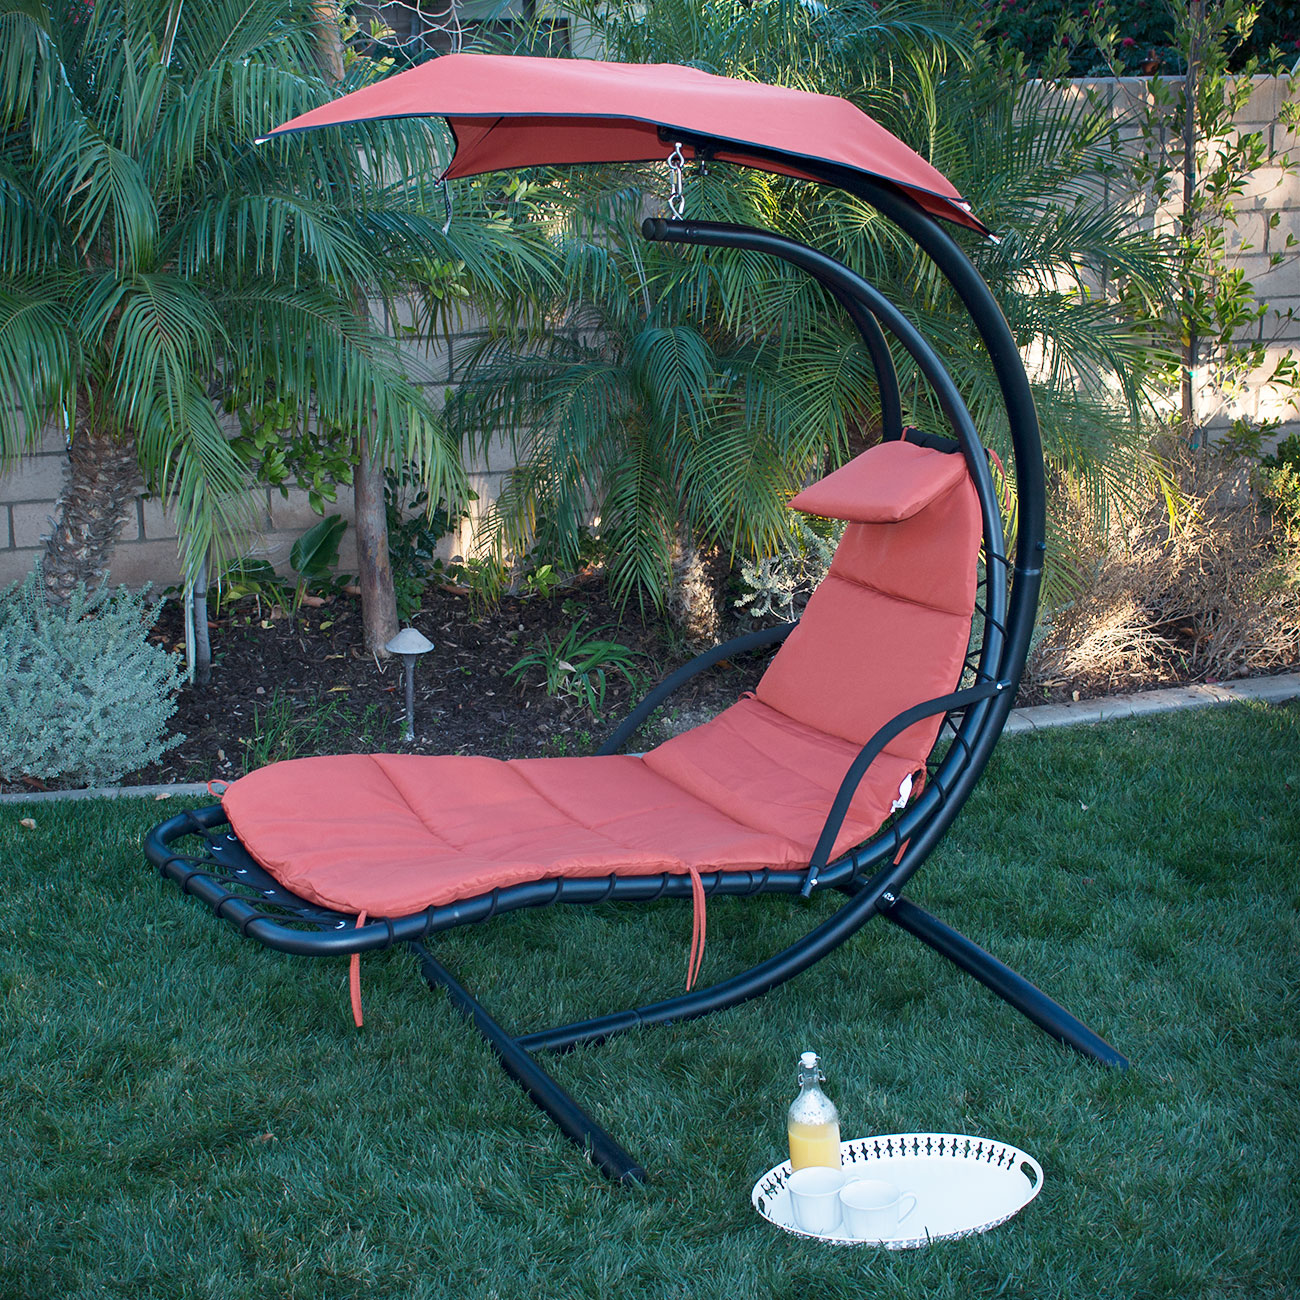 New Swing Hammock Chair Canopy Hanging Chaise Lounger Chair Arc Stand Air Porch Ebay